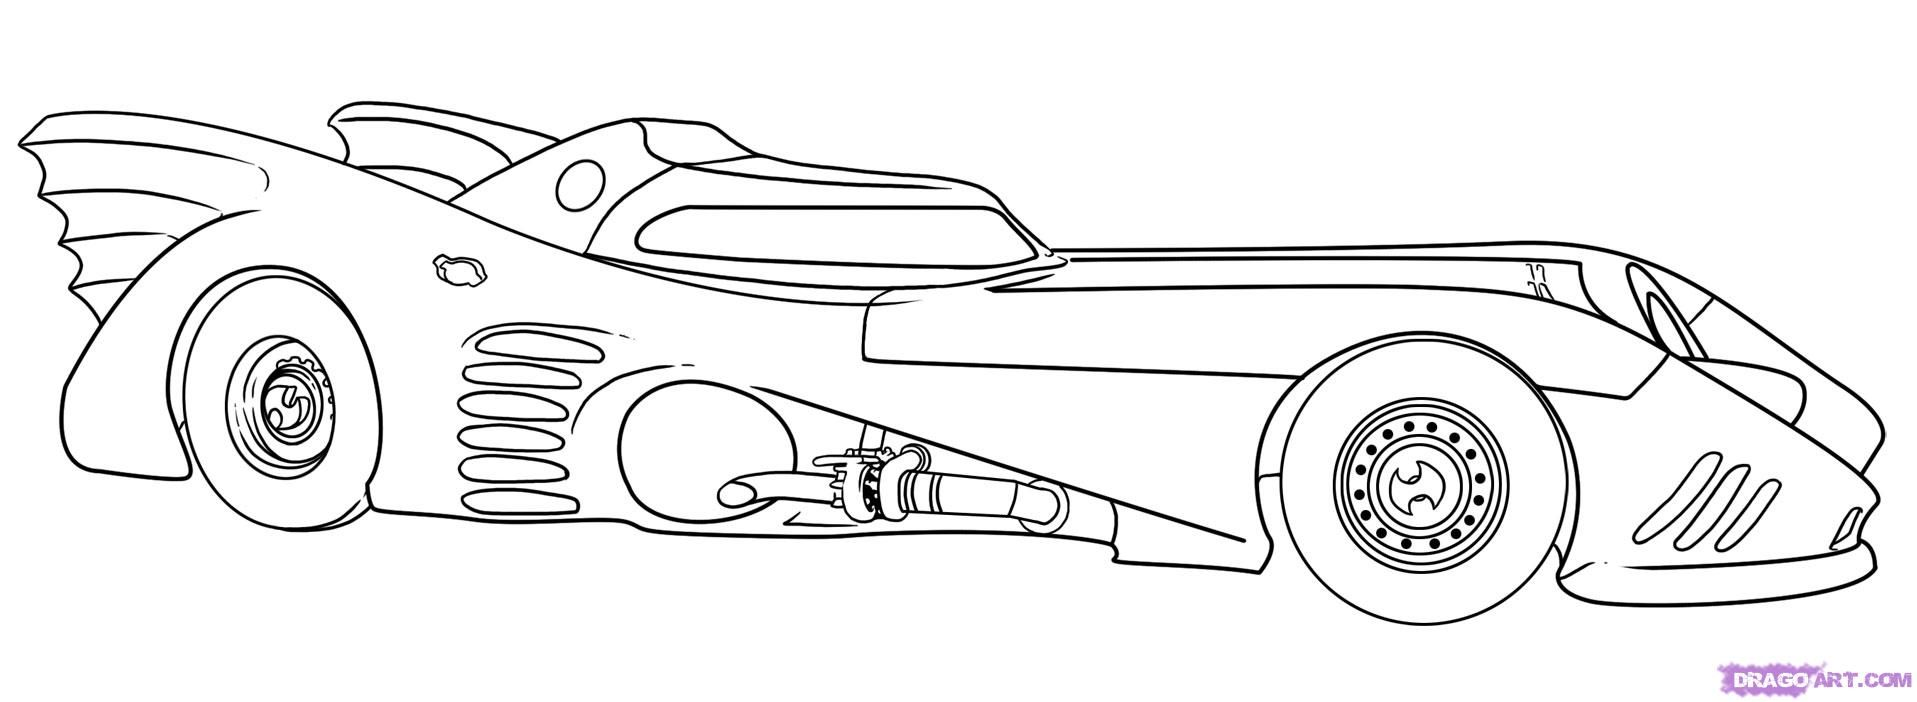 batmobile coloring pages batmobile coloring pages   Google Search | Batman | Coloring pages  batmobile coloring pages